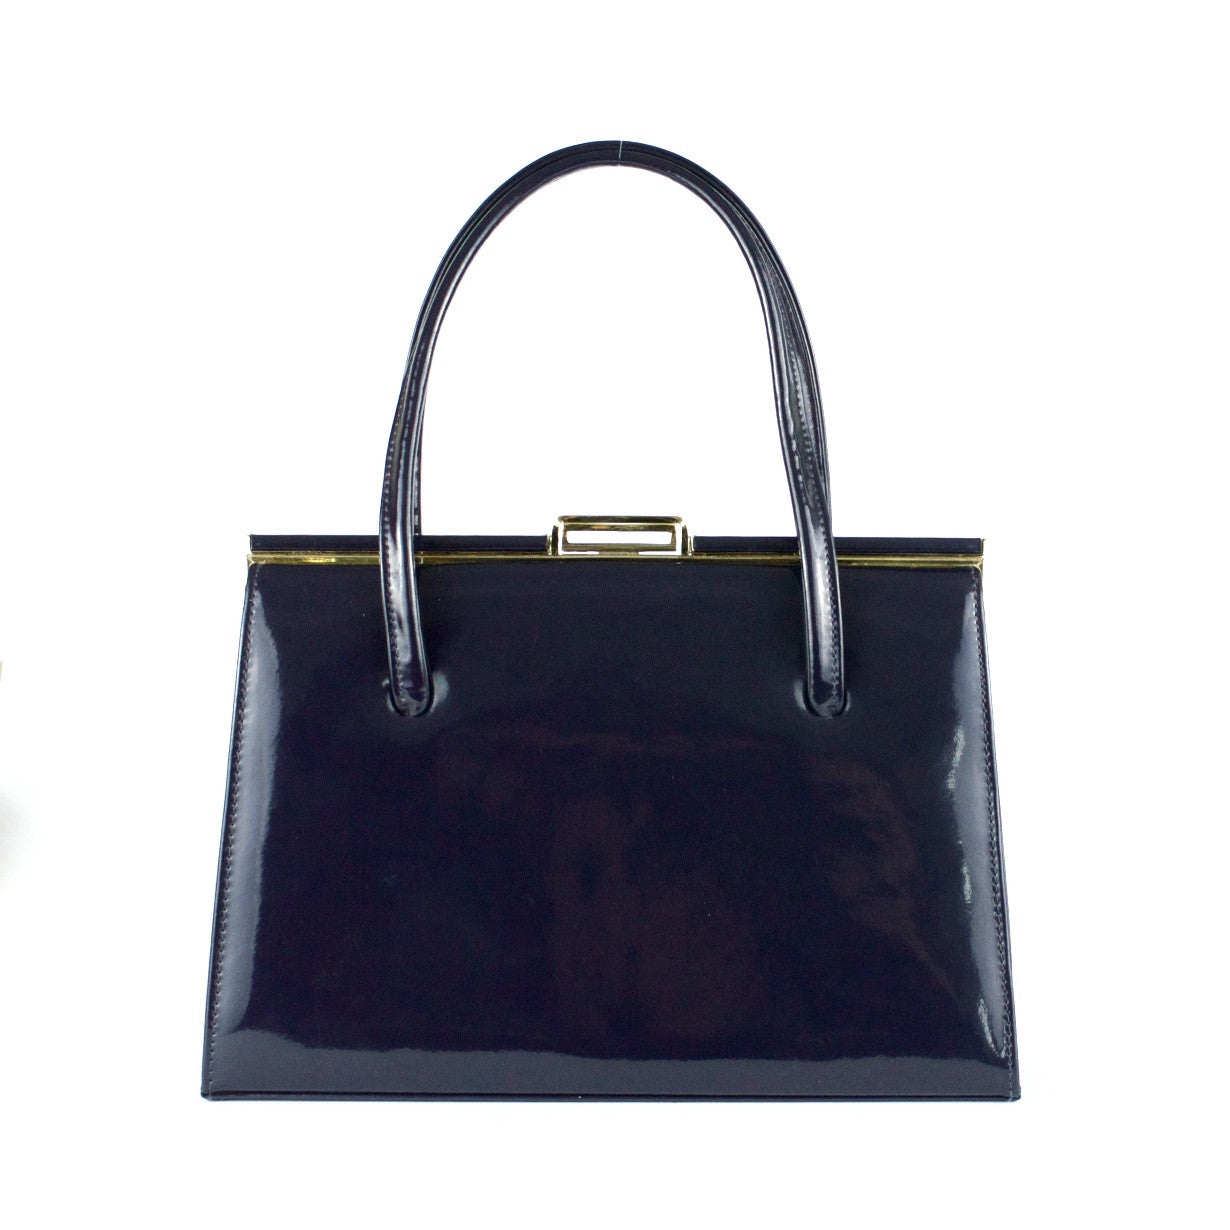 Ackery navy patent leather vintage handbag